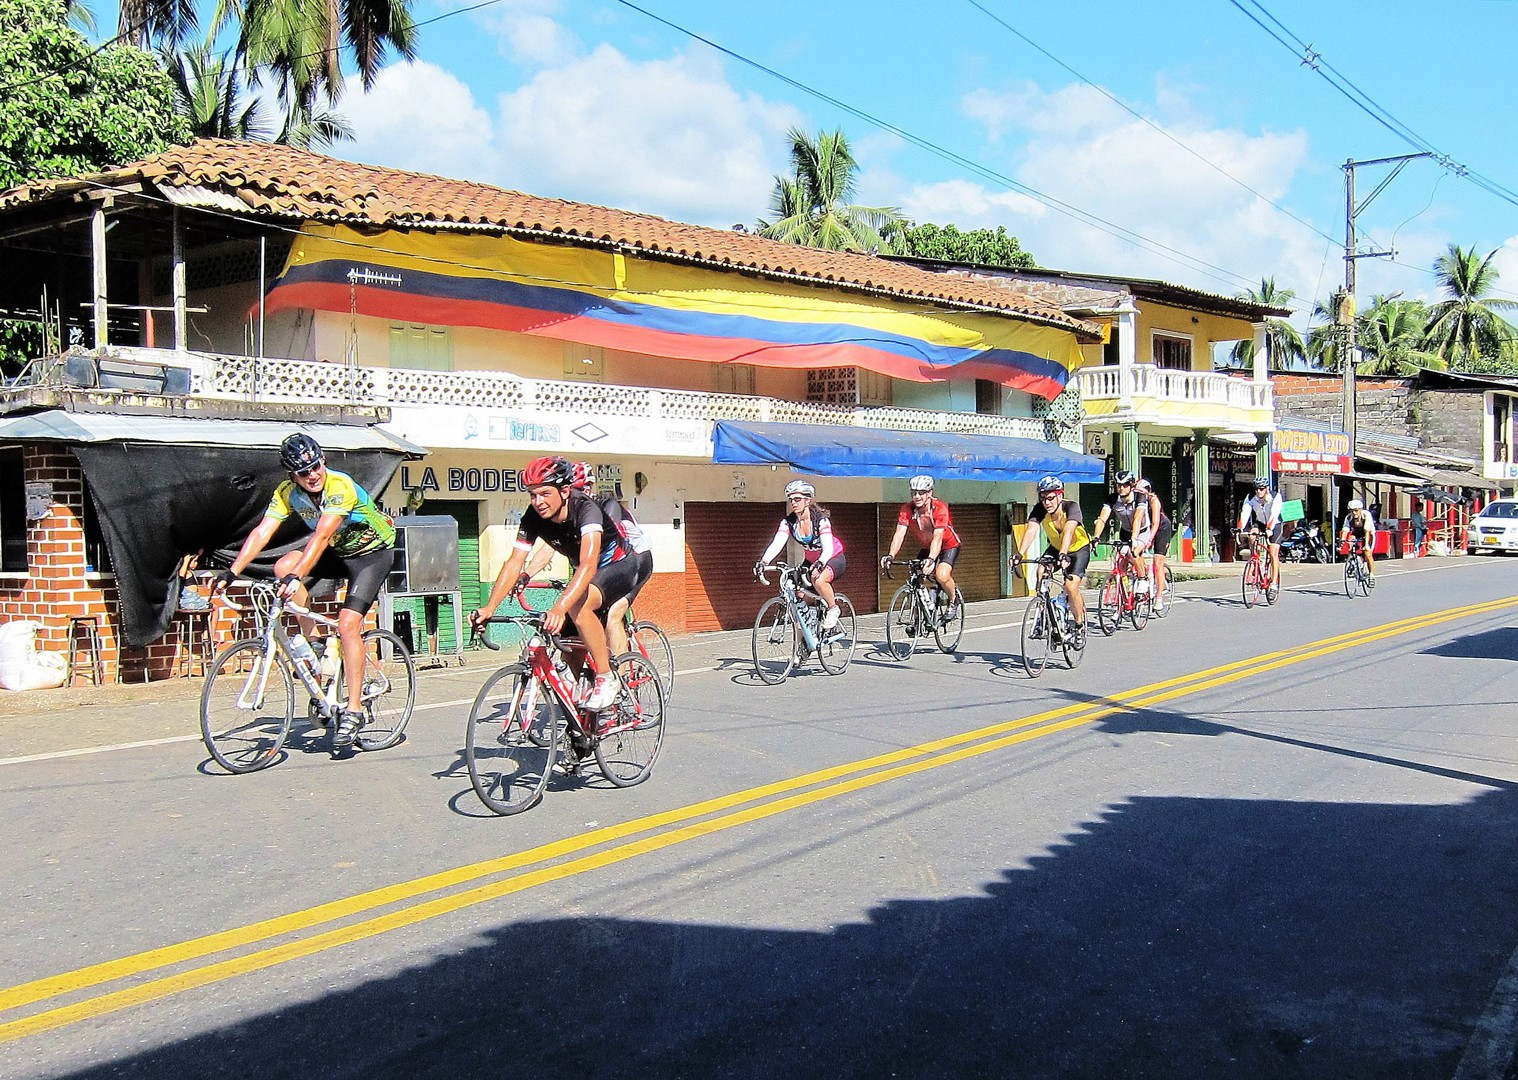 colombia-road-cycling-holiday-skedaddle.jpg - Colombia - Emerald Mountains - Road Cycling